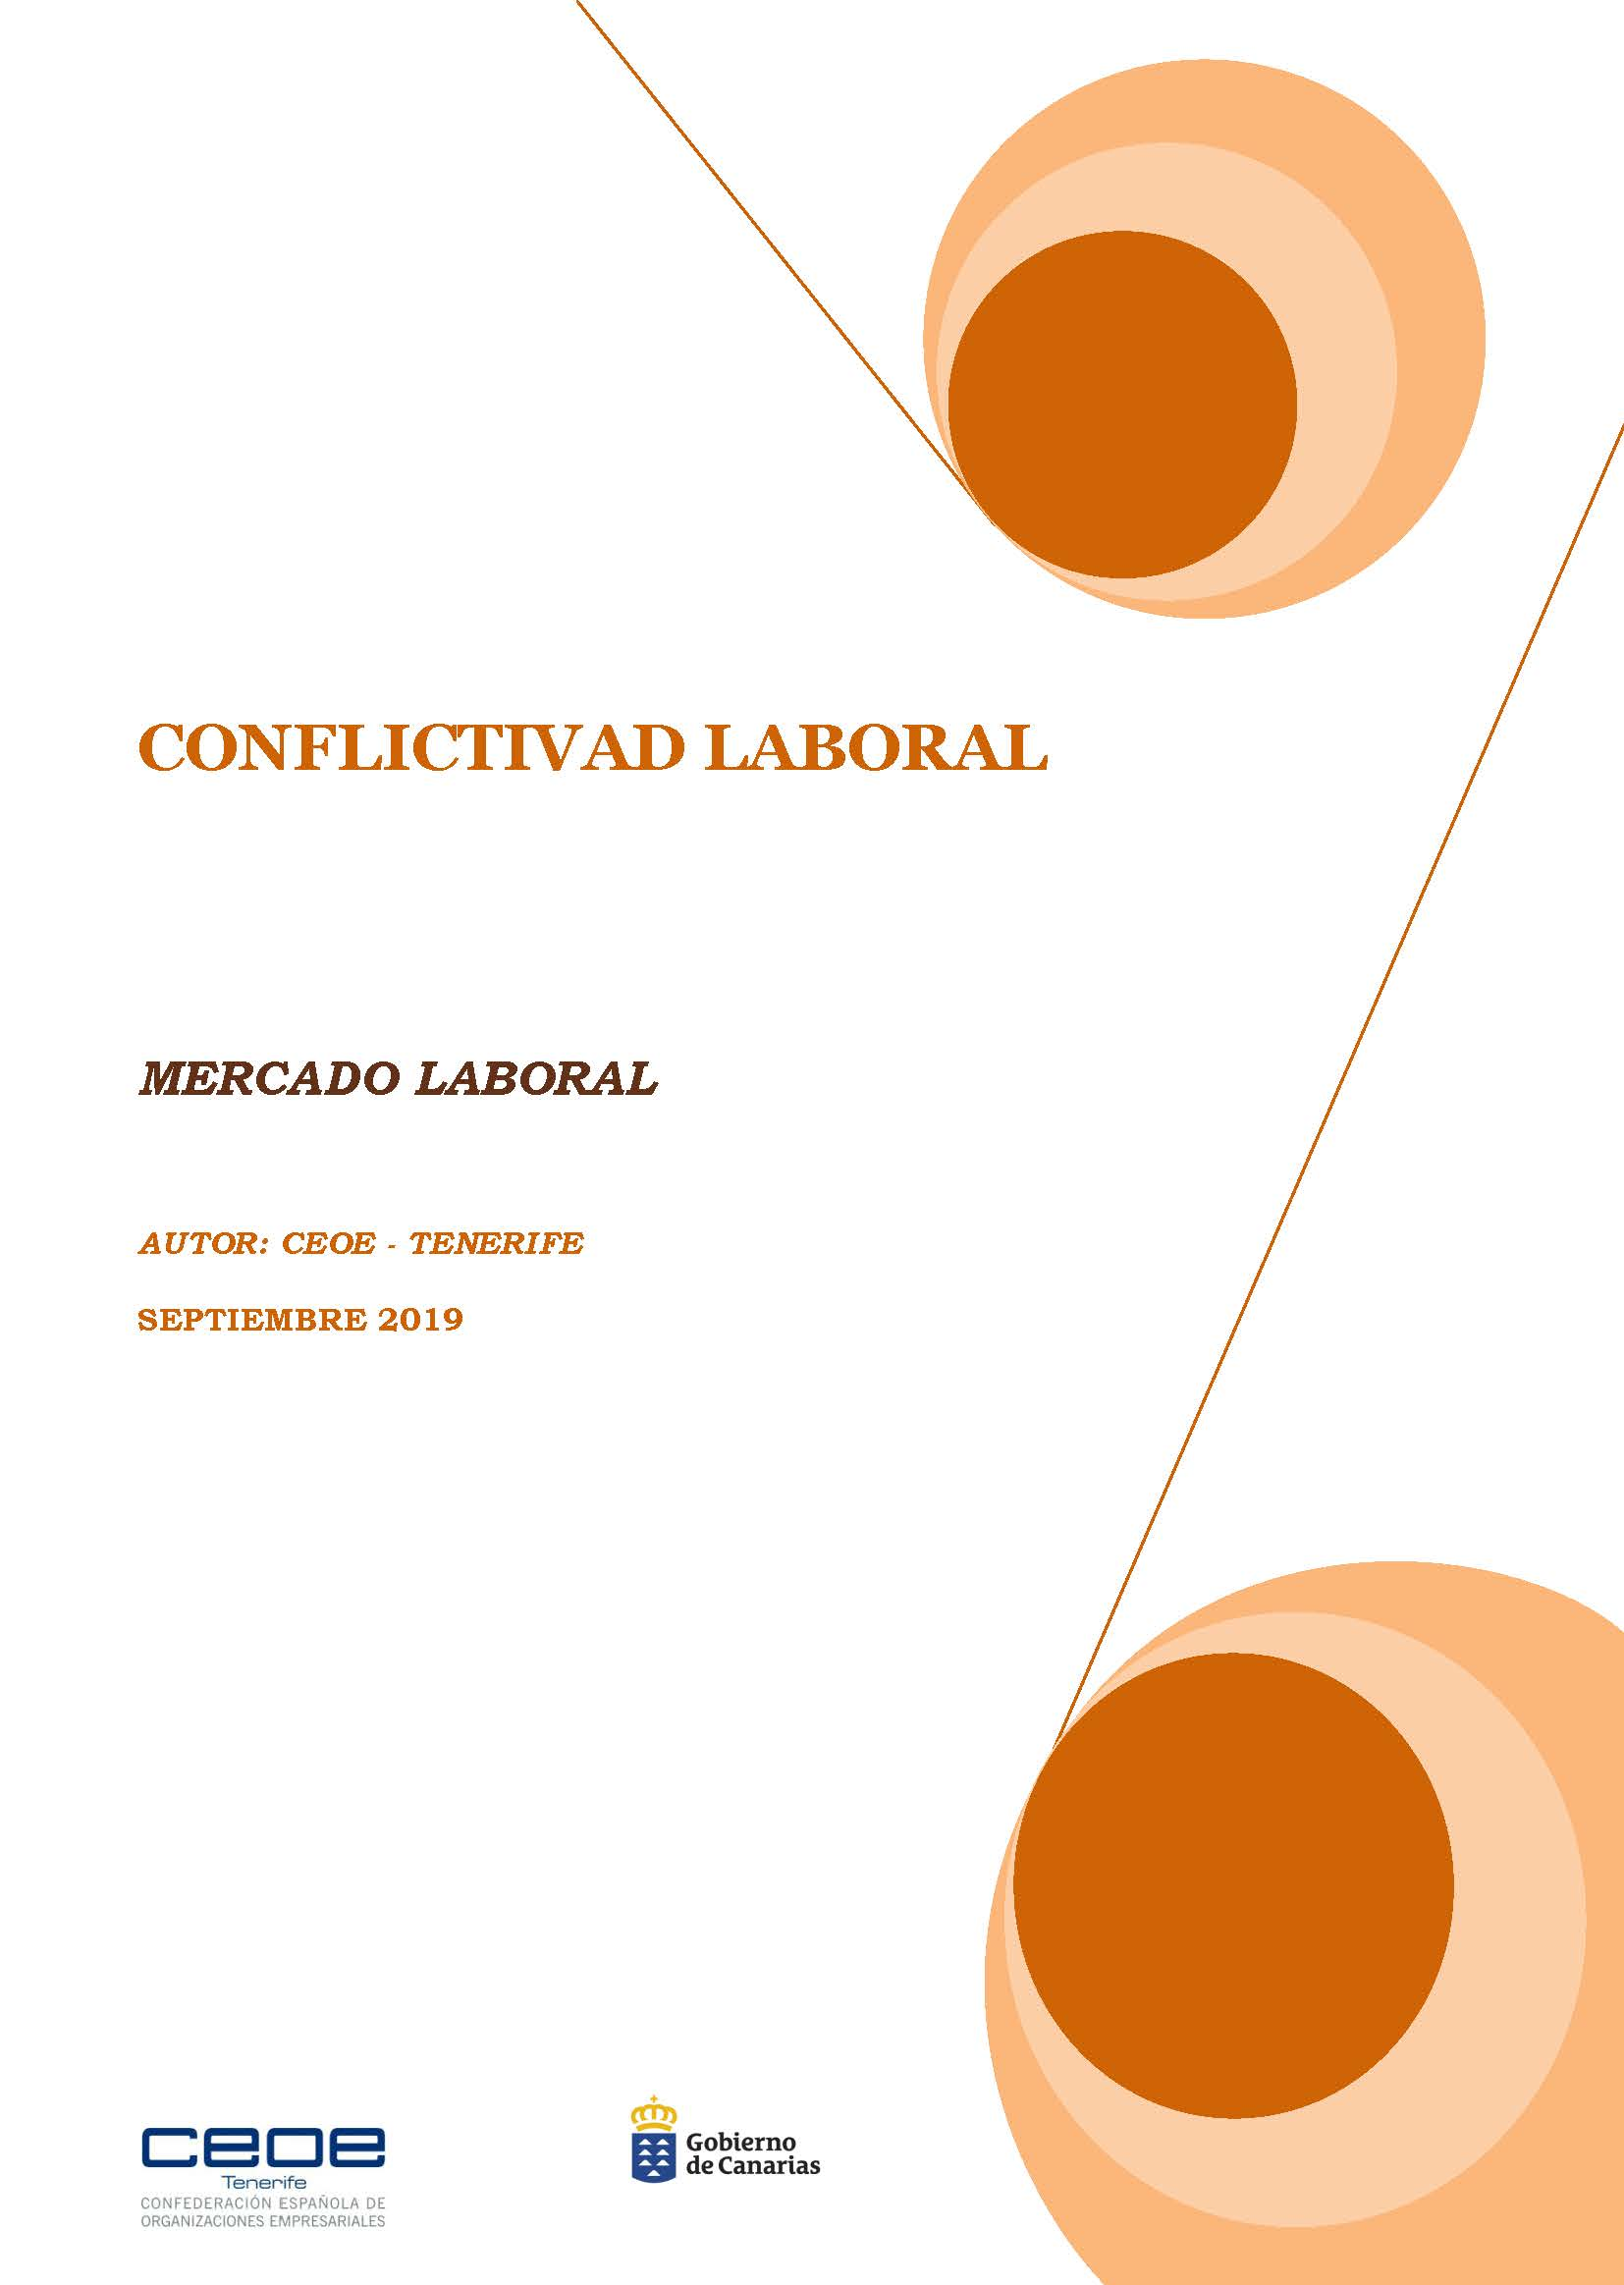 MERCADO LABORAL - CONFLICTIVIDAD LABORAL SEPT 2019